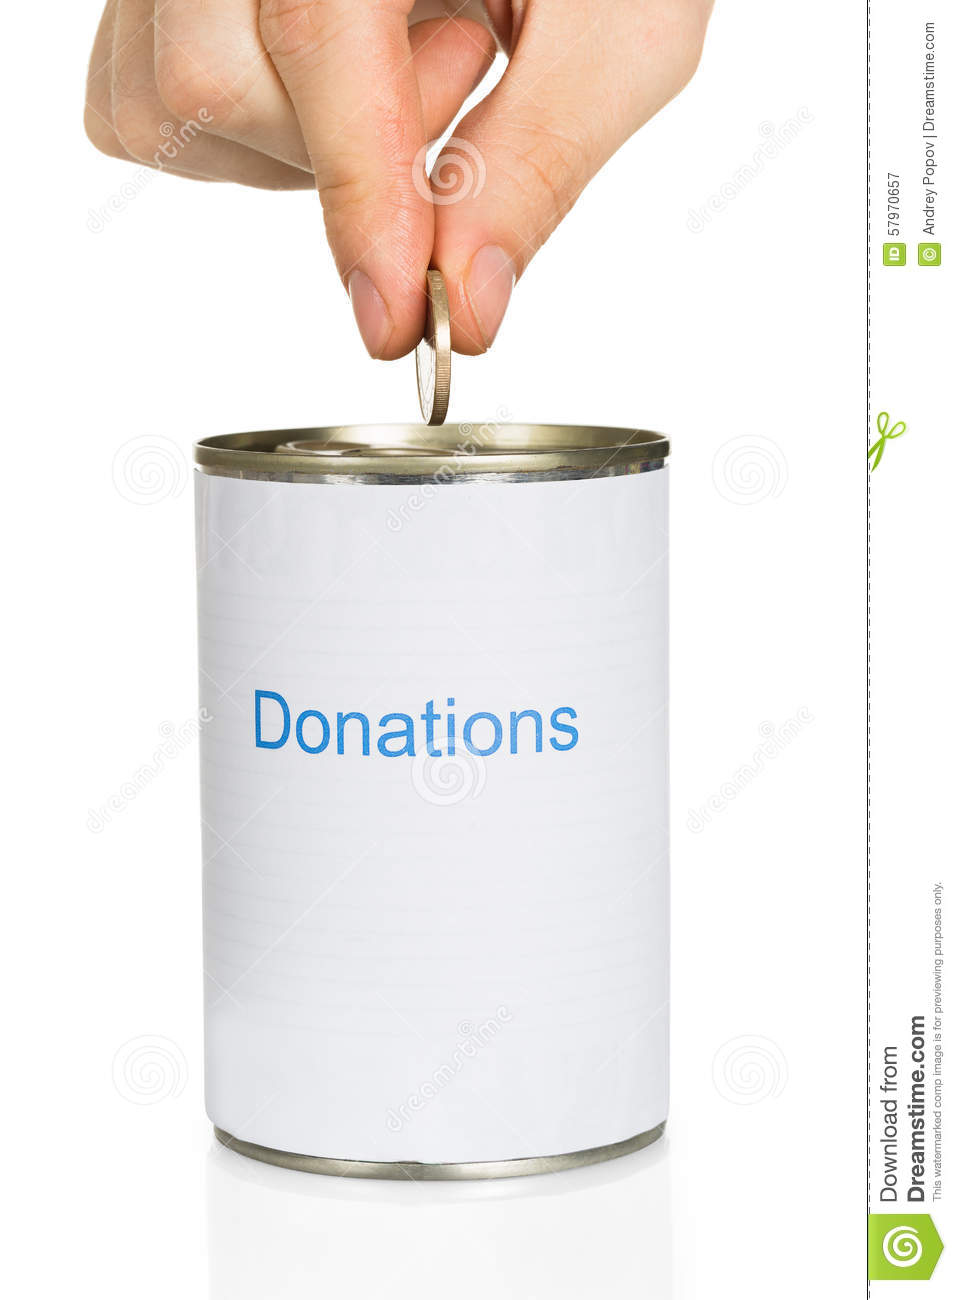 Person S Hand Putting Coin In Donation Can Over White Background